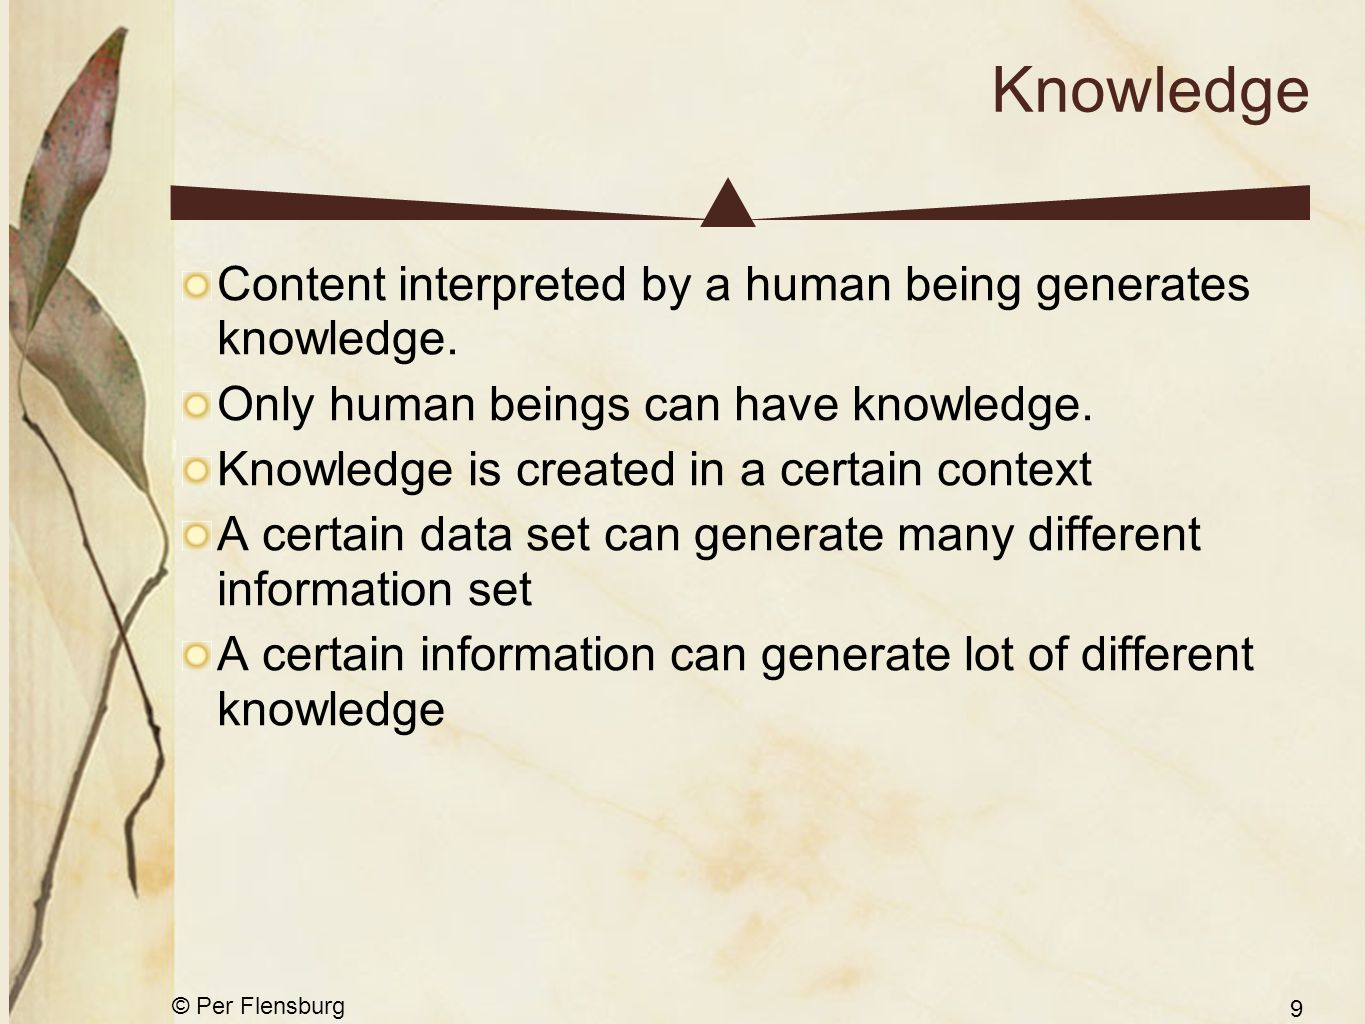 © Per Flensburg 9 Knowledge Content interpreted by a human being generates knowledge. Only human beings can have knowledge. Knowledge is created in a